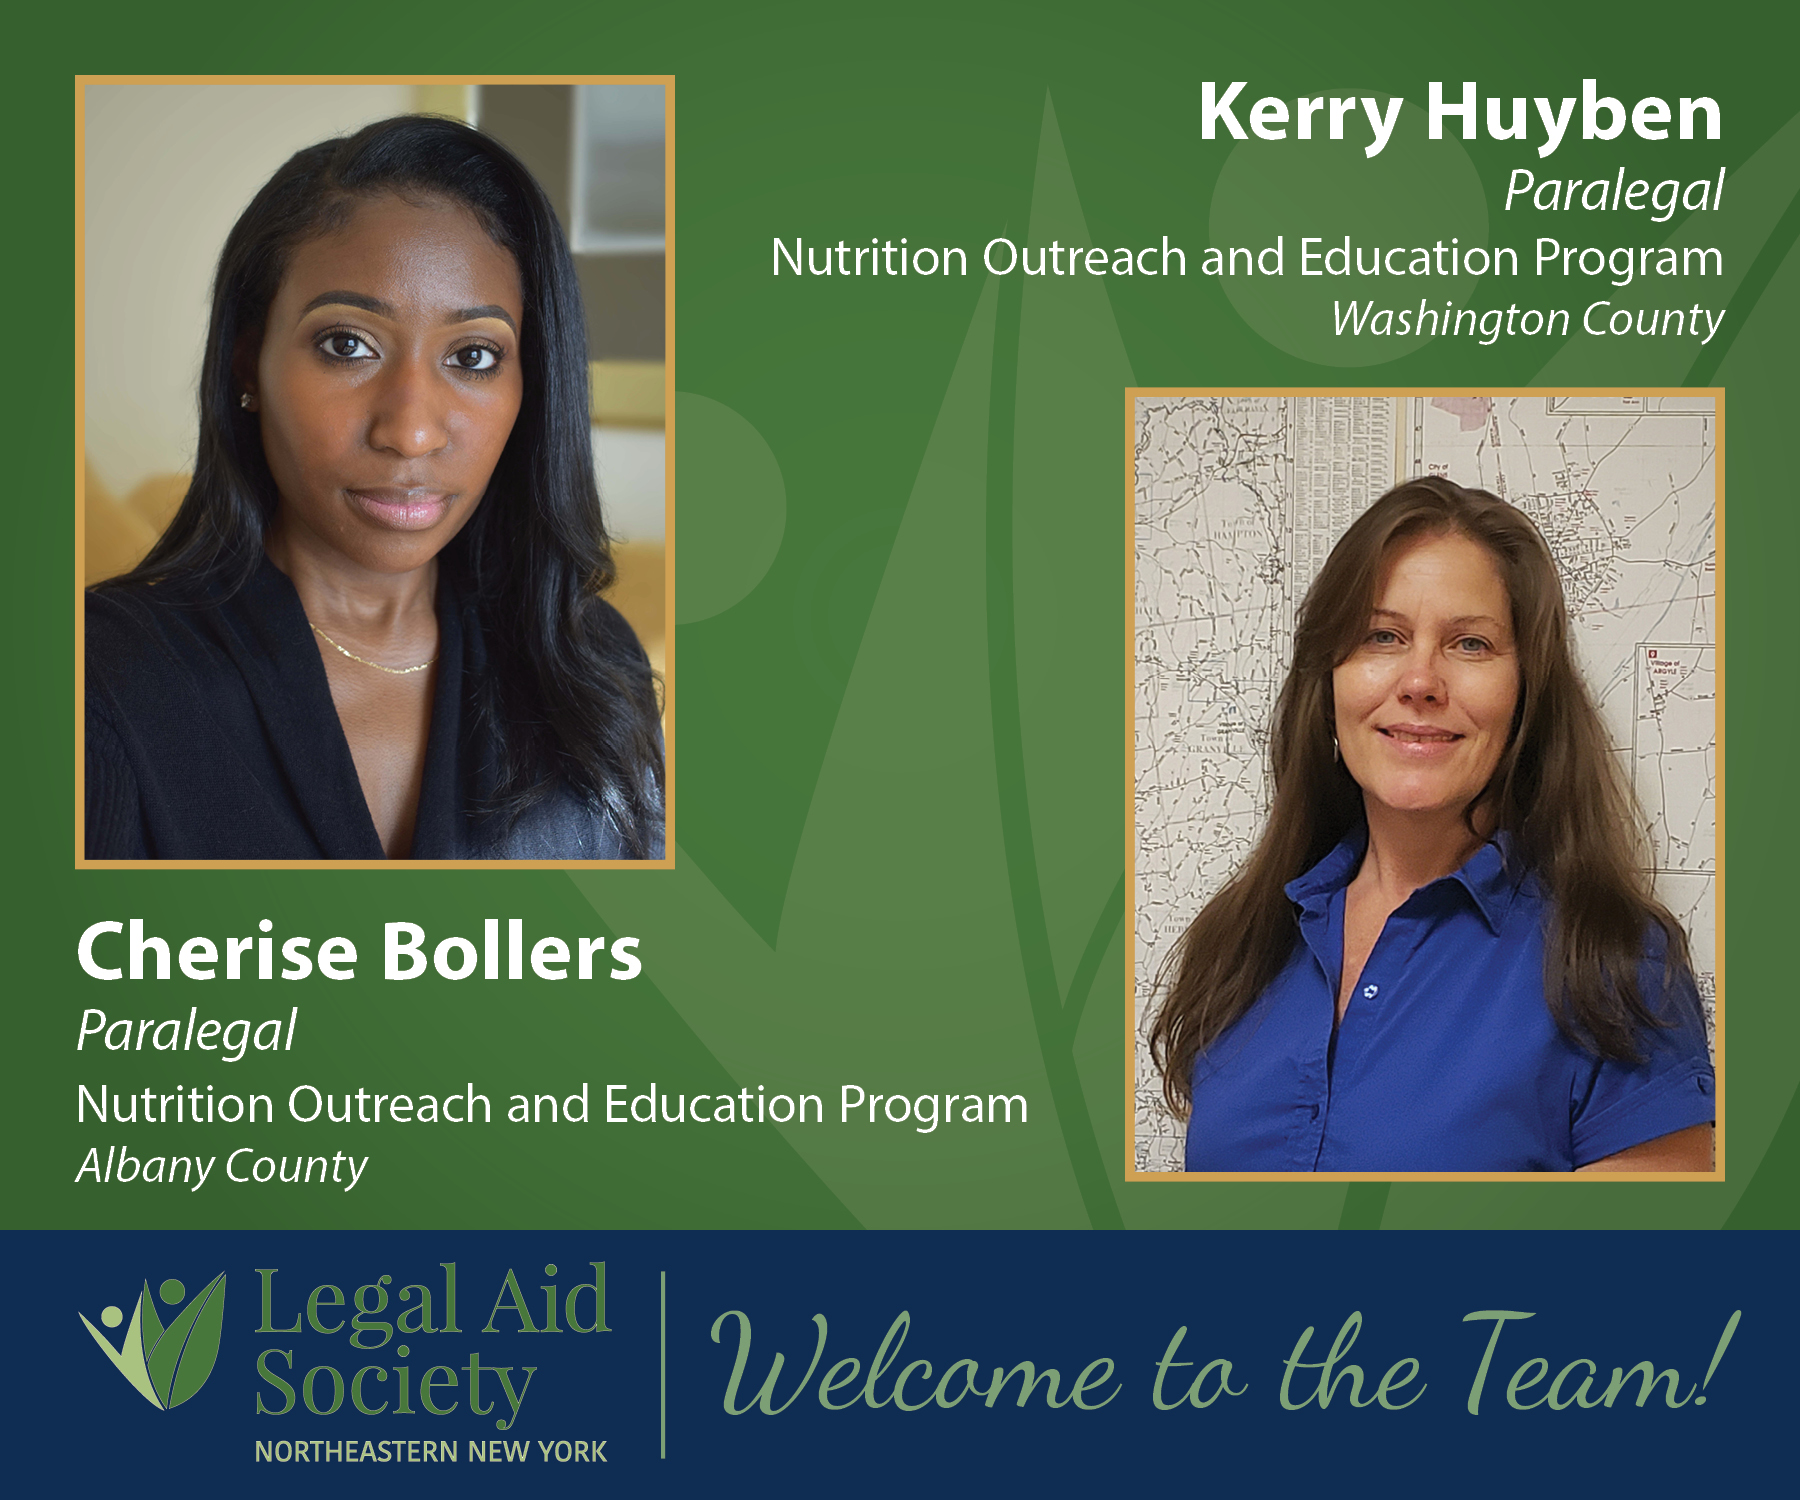 LASNNY Welcomes NOEP Coordinators Cherise Bollers and Kerry Huyben